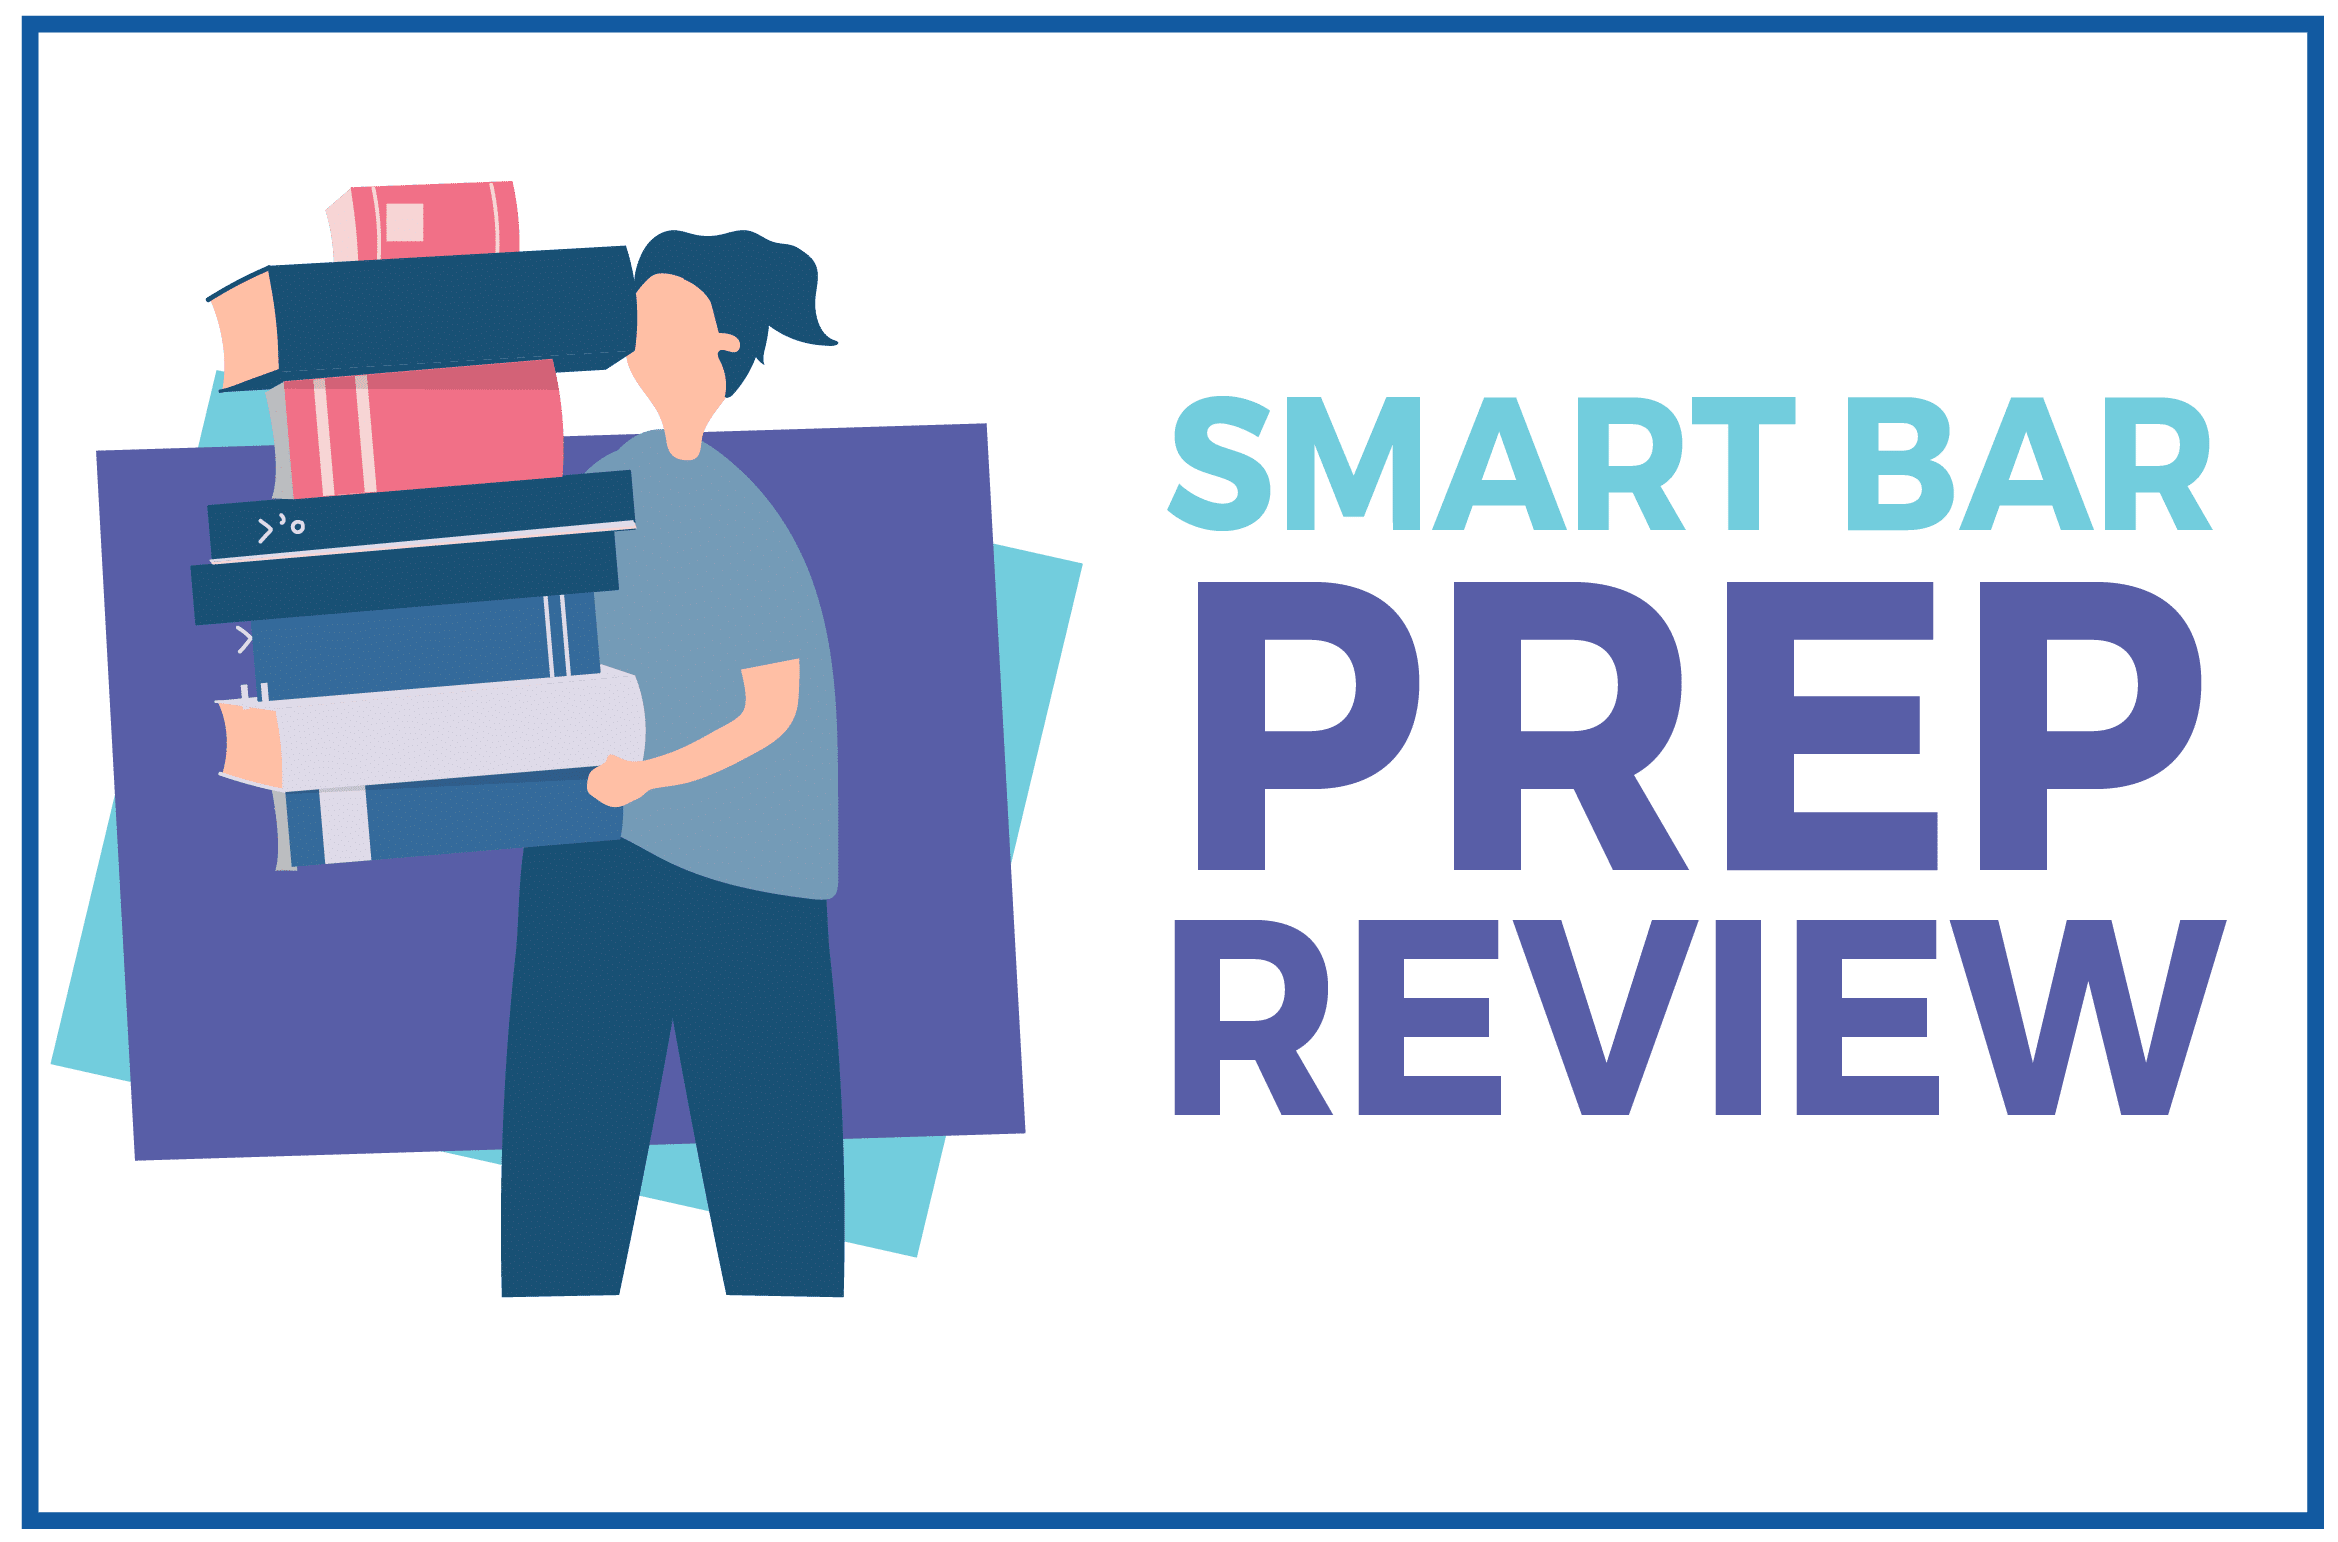 Smart Bar Prep Review